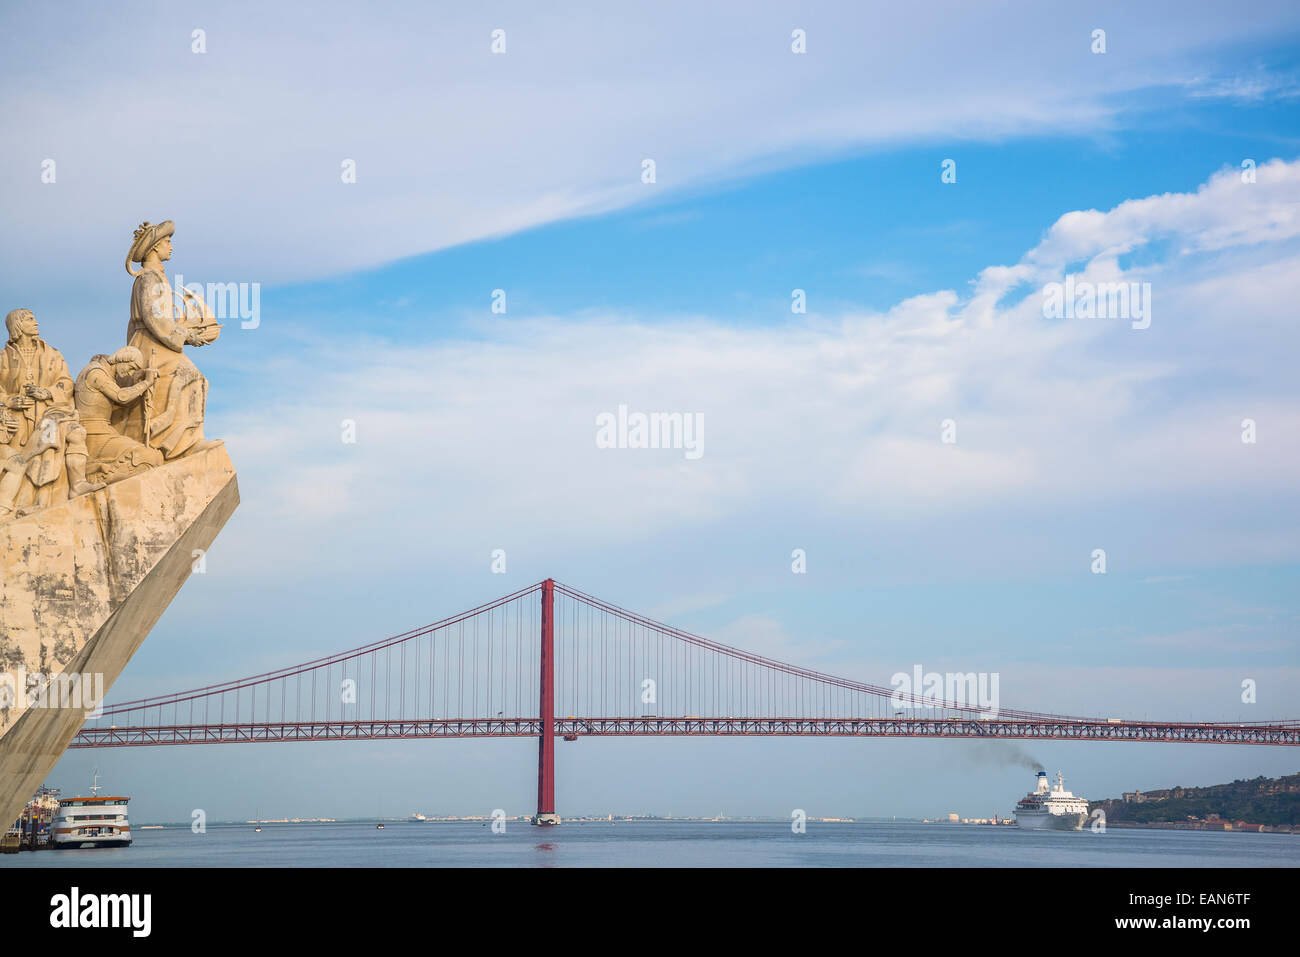 Monument to the Discoveries and  25th of April Bridge, Lisbon, Portugal - Stock Image